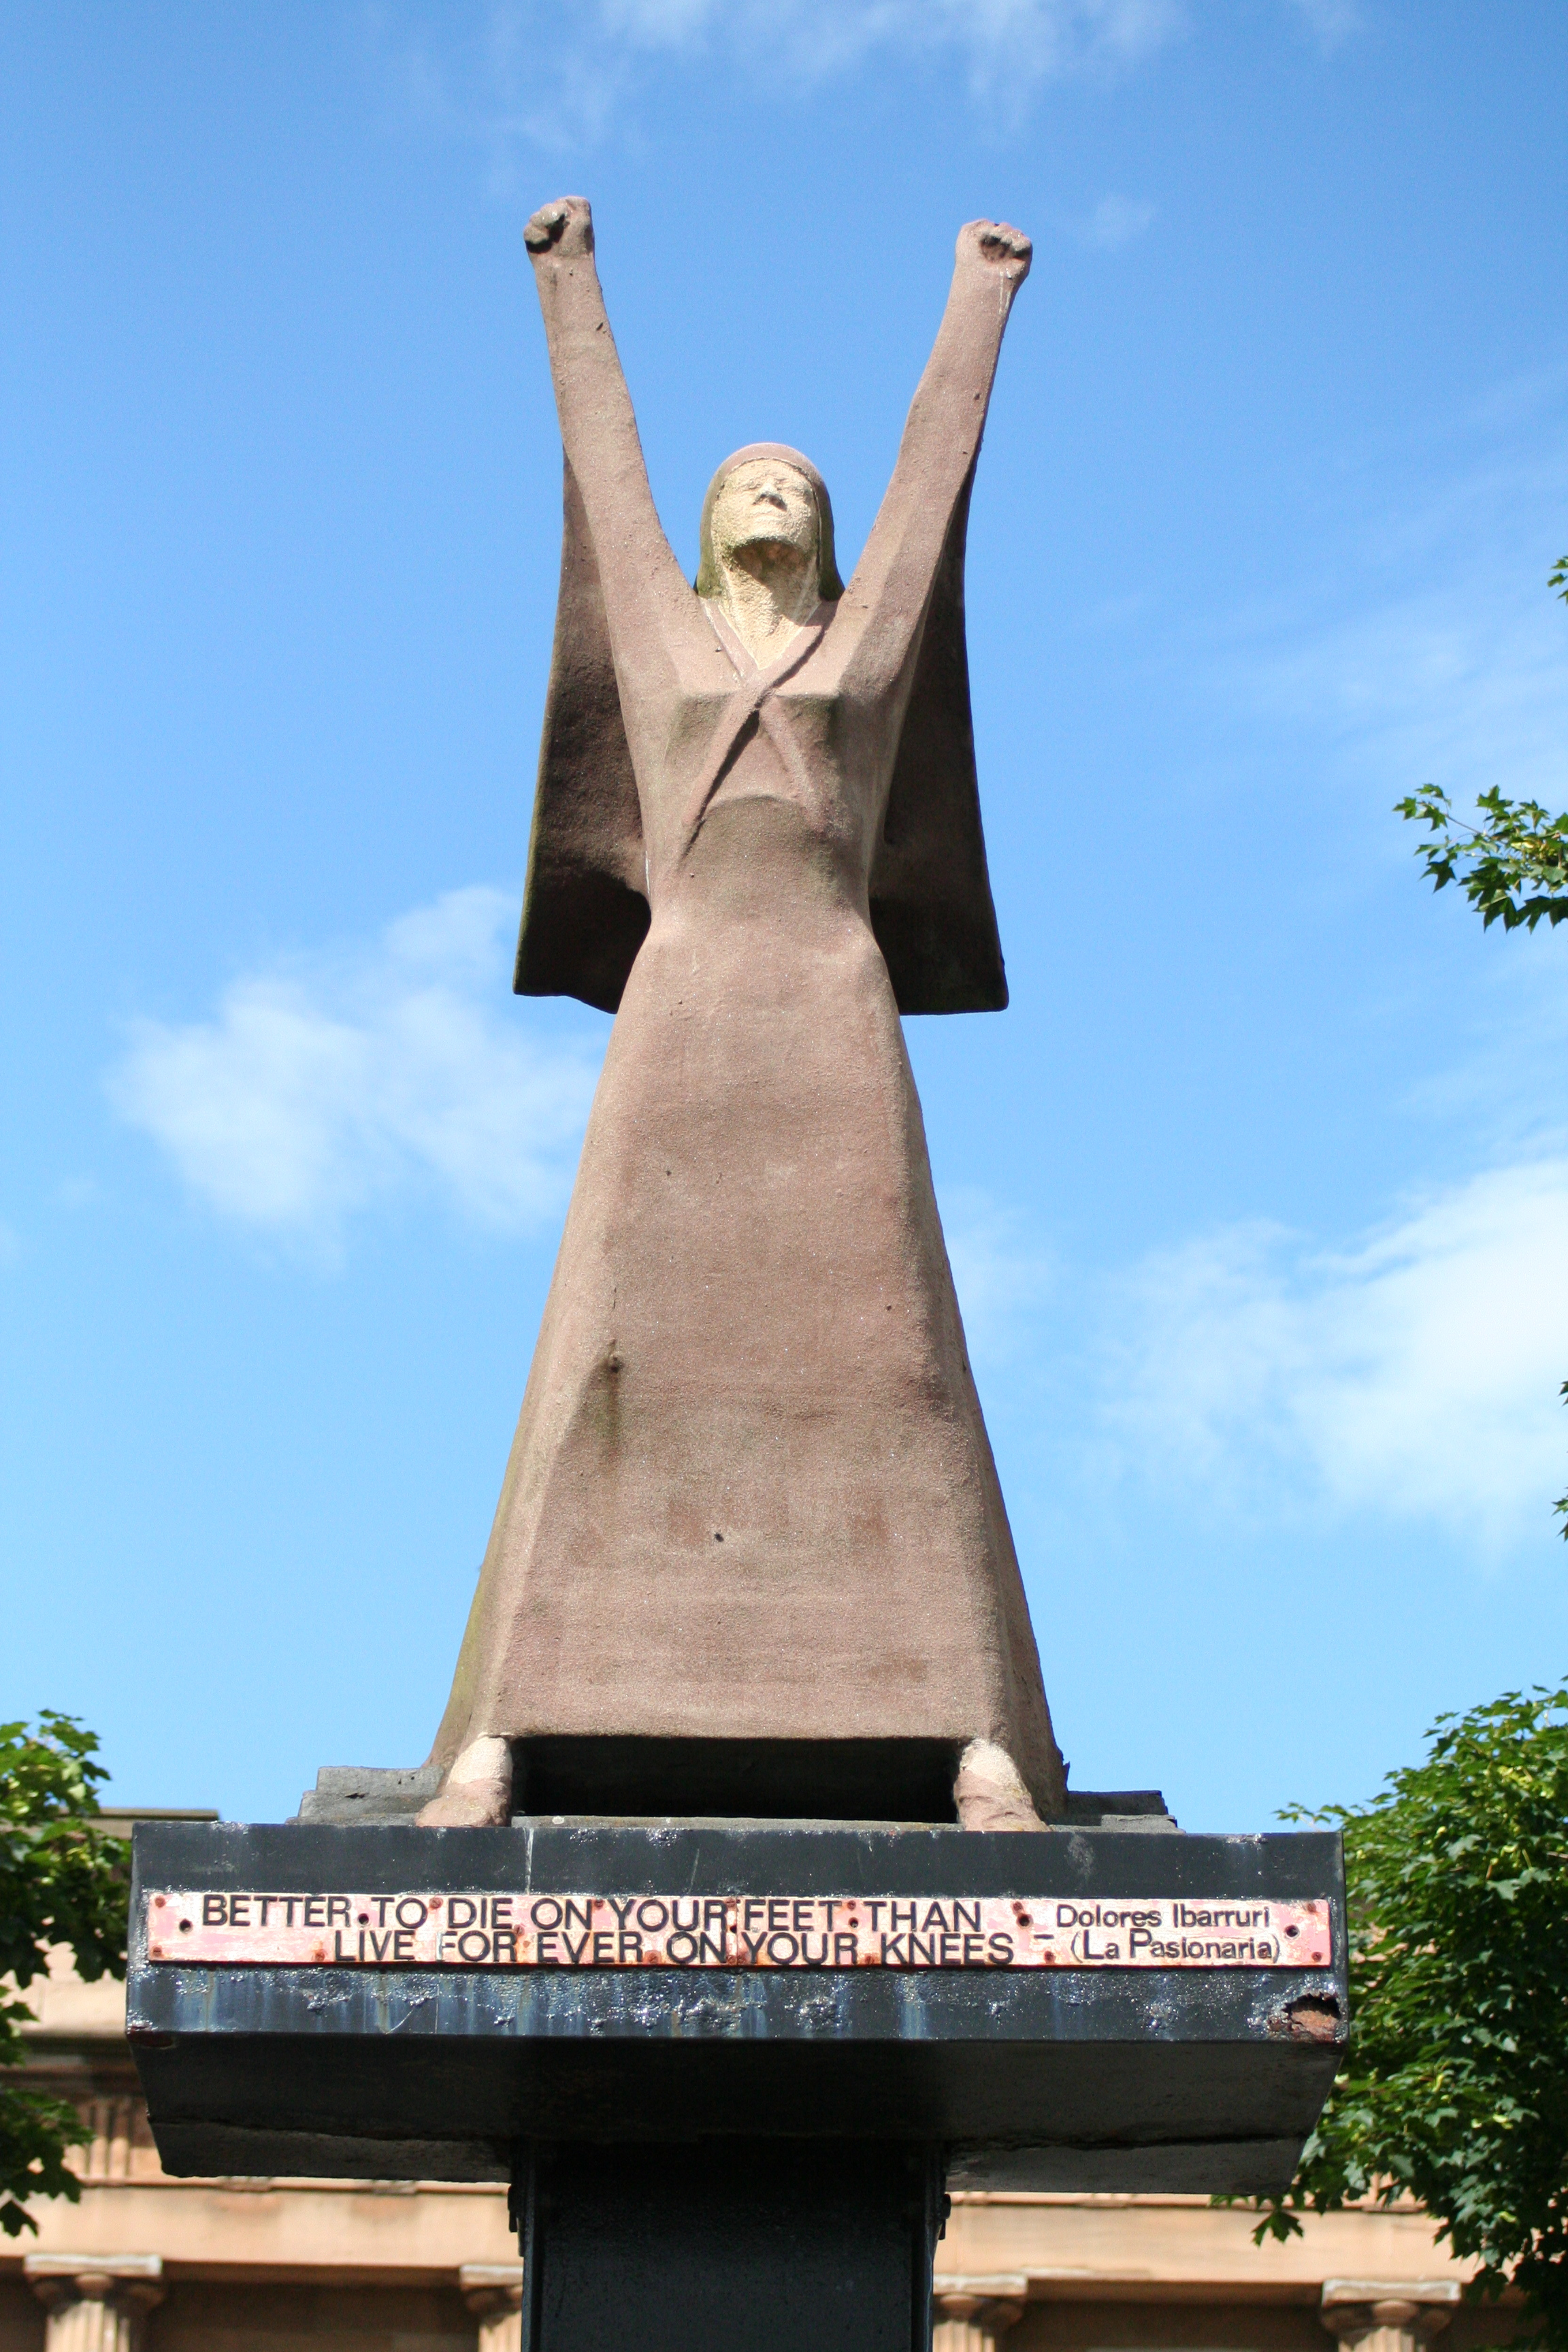 """Statue of a woman in a strong pose with both arms up in protest with fists clenched and quotation beneath """"It is better to die on your feet than to live forever on your knees."""""""